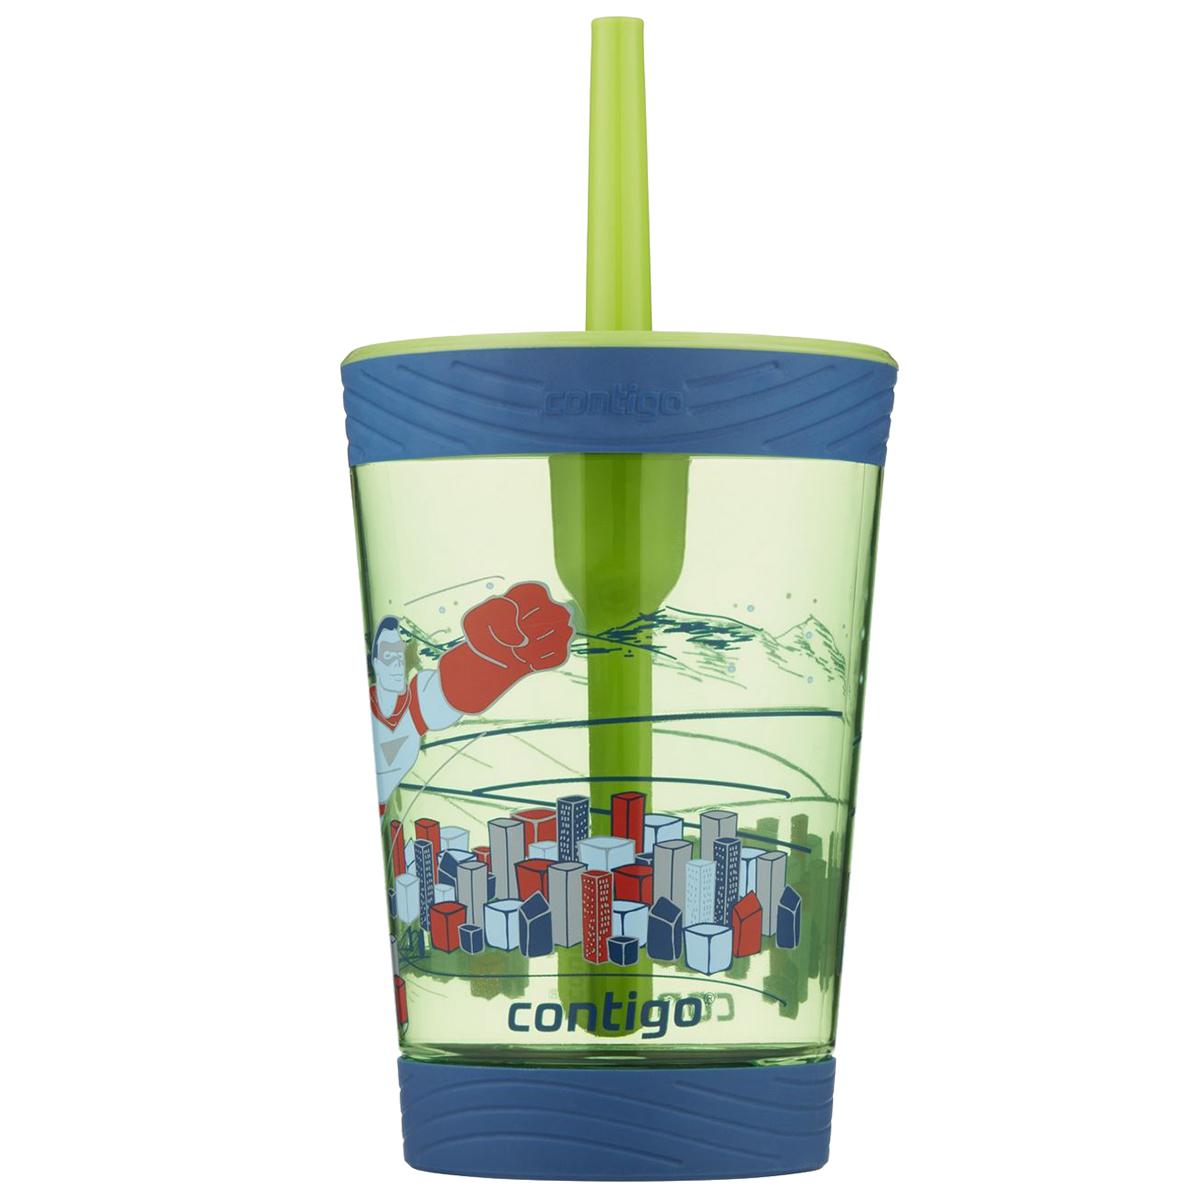 Contigo-14-oz-Kid-039-s-Spill-Proof-Sippy-Cup-Tumbler-with-Straw thumbnail 4